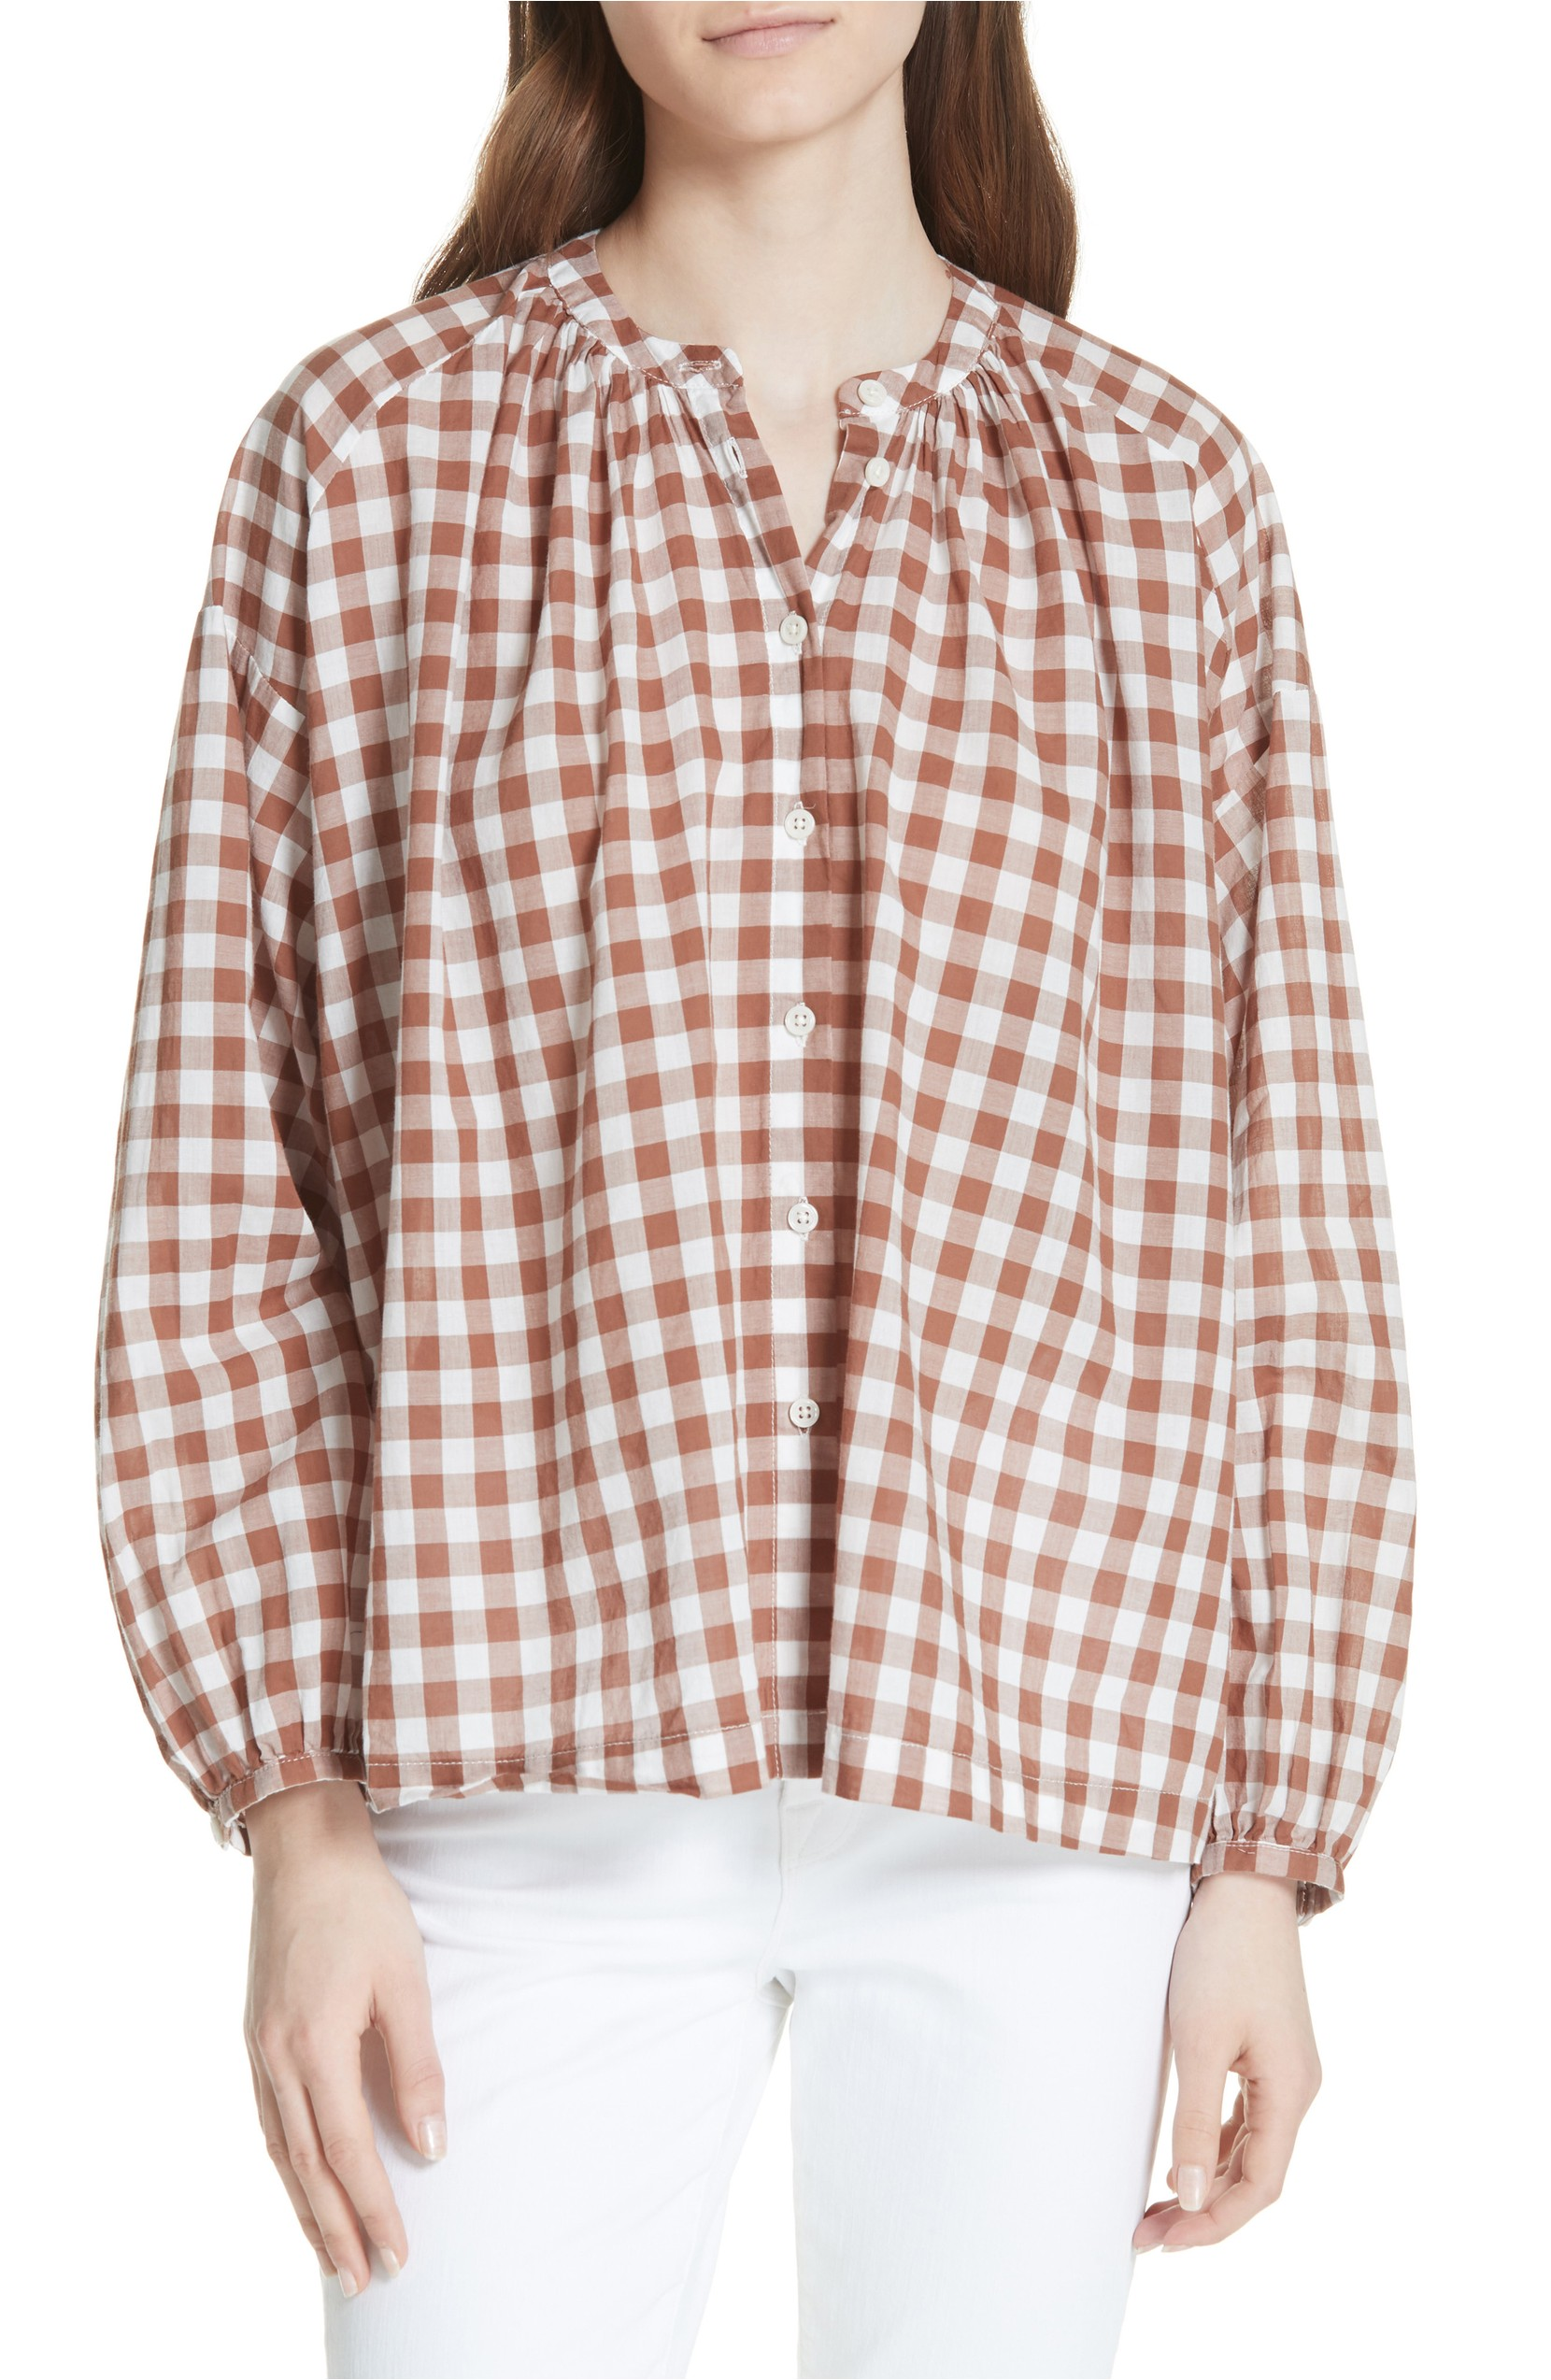 Gingham Button Up Long Sleeve Top